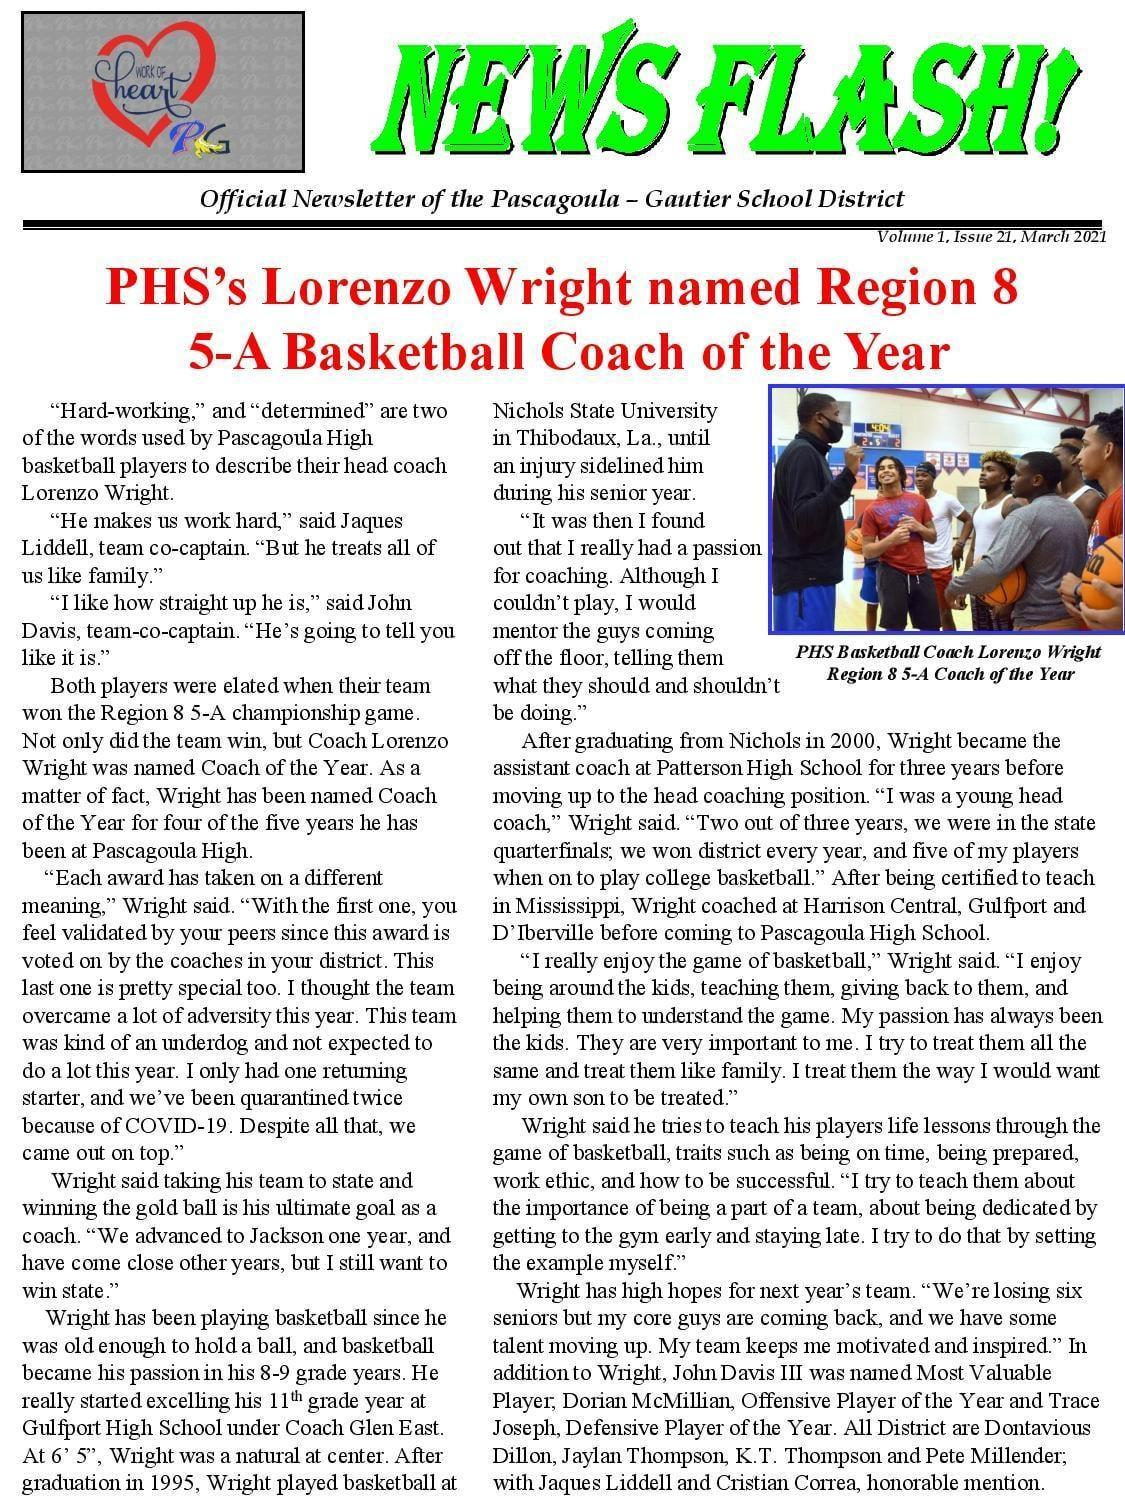 PHS Coach Lorenzo Wright Named Region 8 5A Basketball Coach of the Year